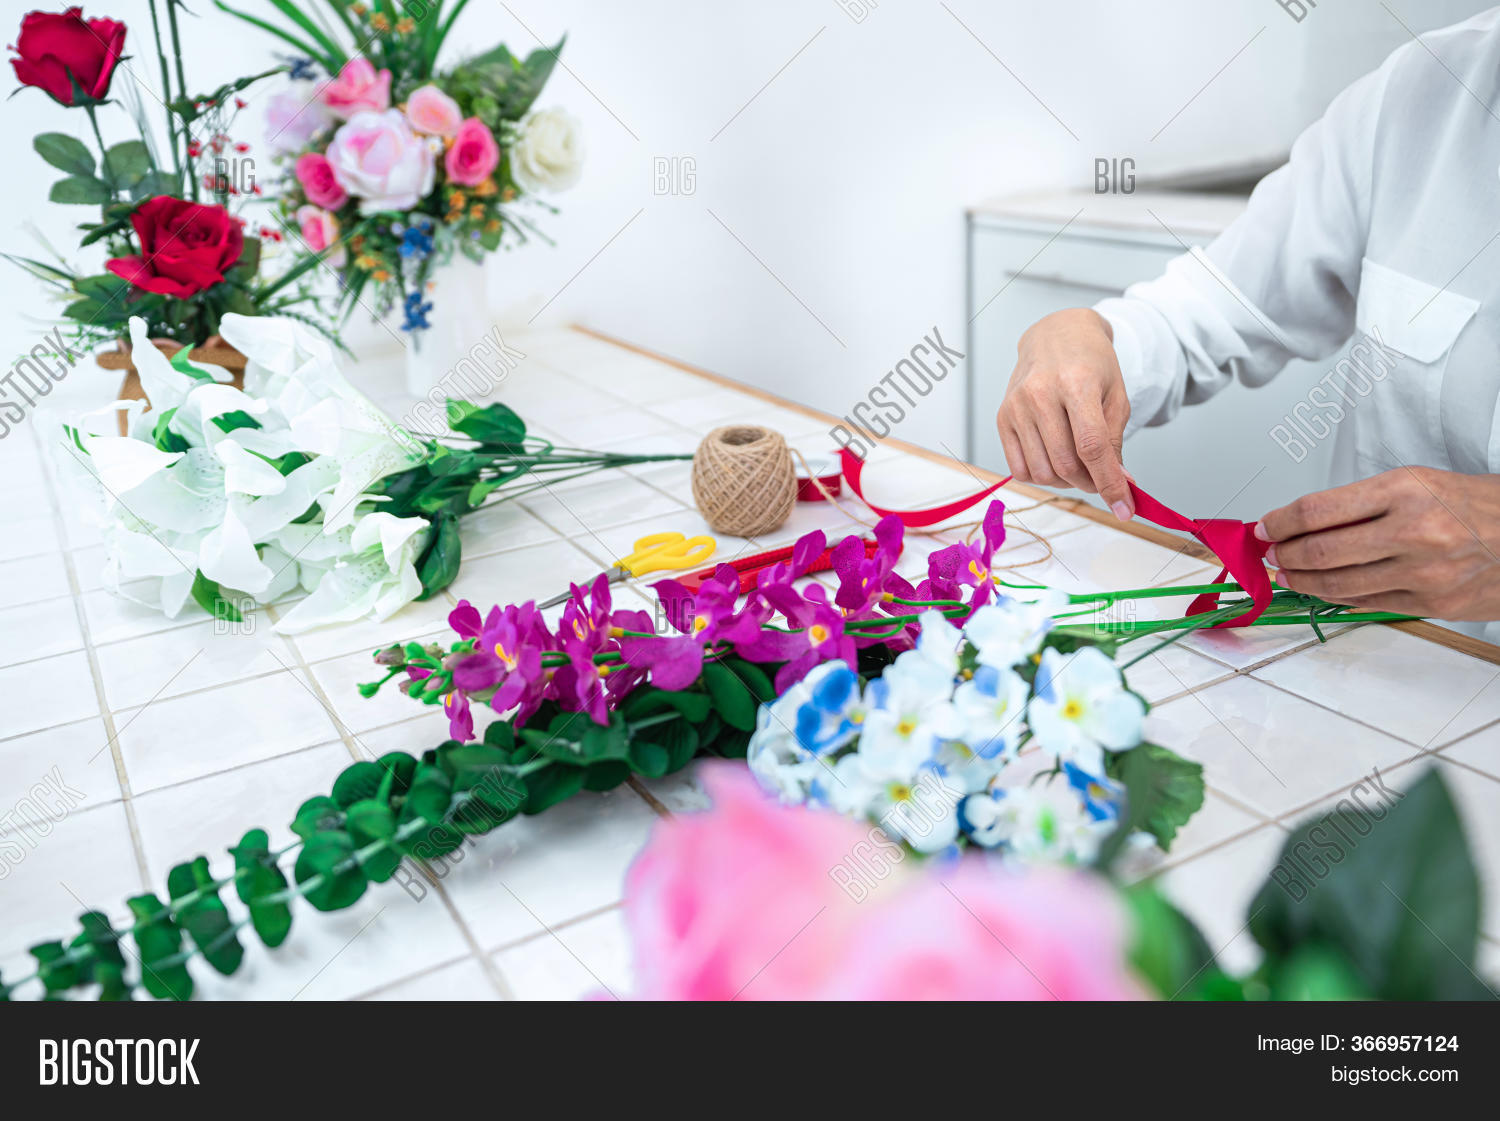 Arranging Artificial Image Photo Free Trial Bigstock